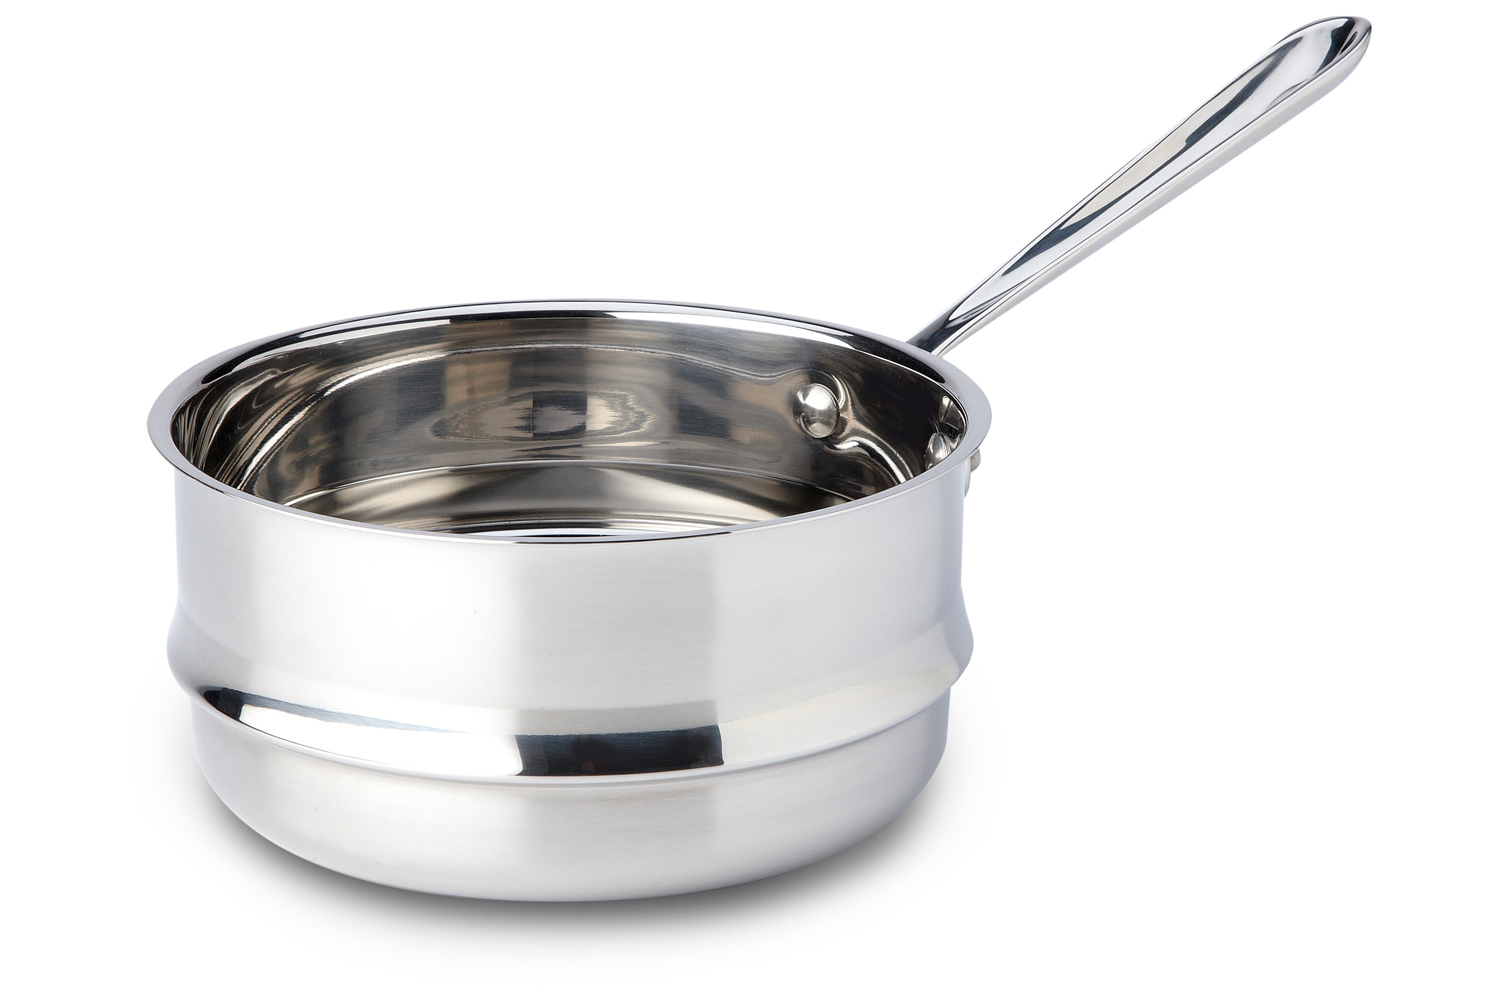 All-Clad Steamer Insert for 3 qt. & 4 qt. Sauce Pans